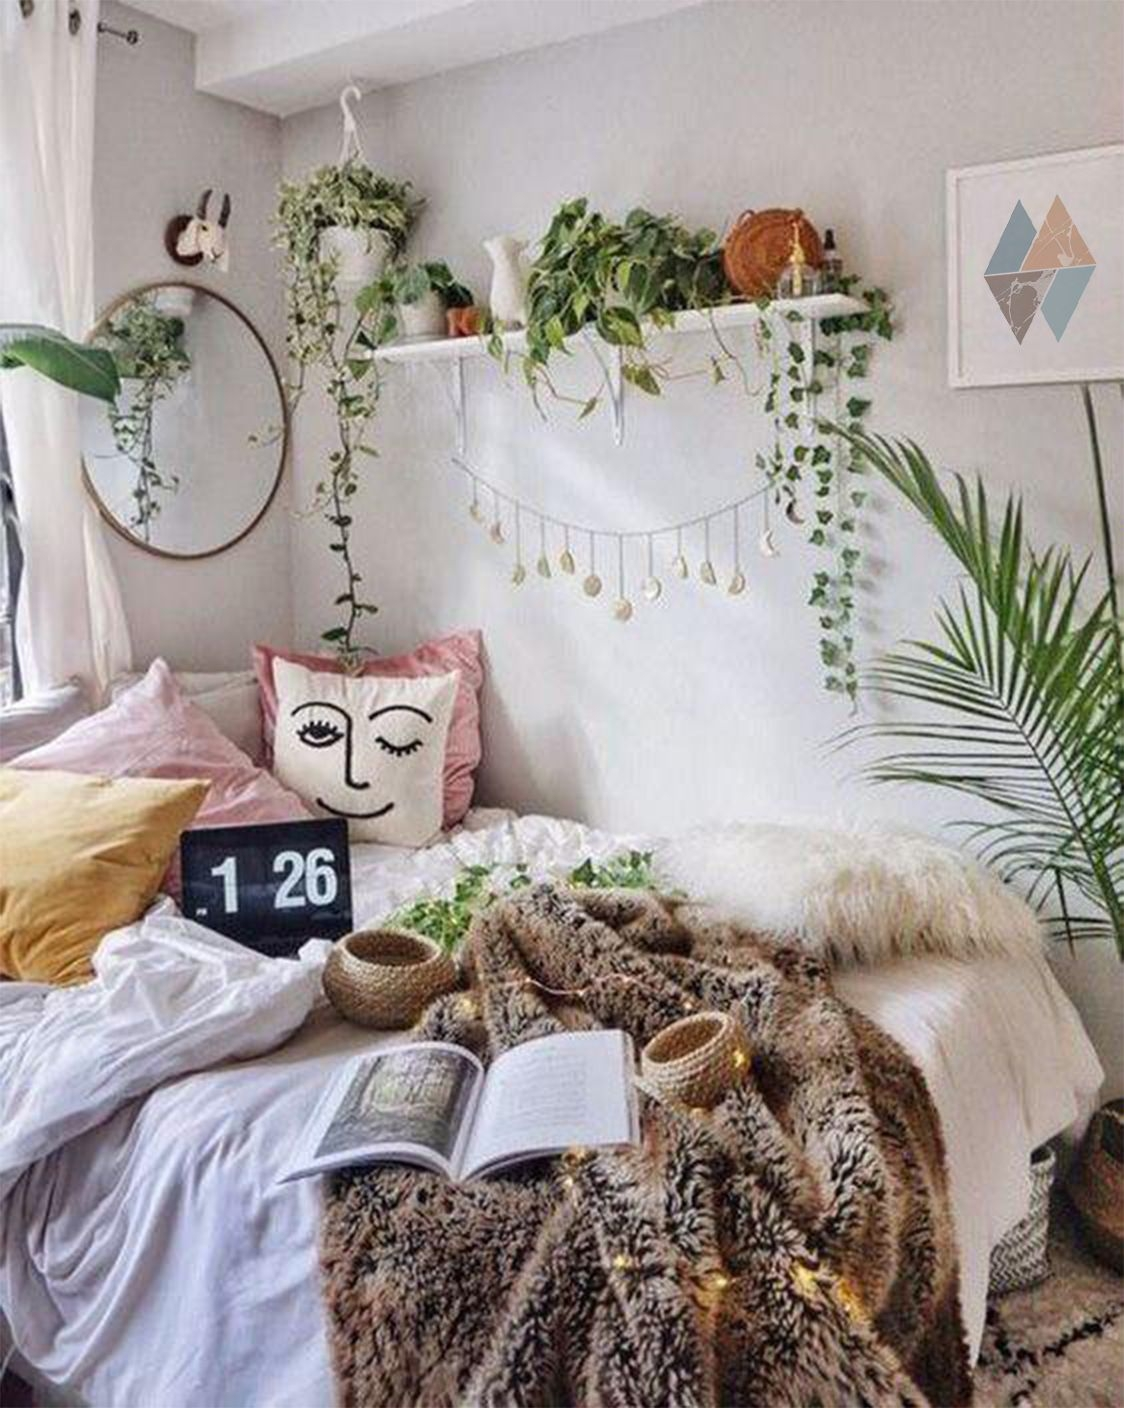 Comely Minimalist Bohemian Dorm Room Bedding On Gorgeous Turquoise Triangles Wall Art Print Minimalism Geometric On Minimalist Bohemian Dorm Room Bedding